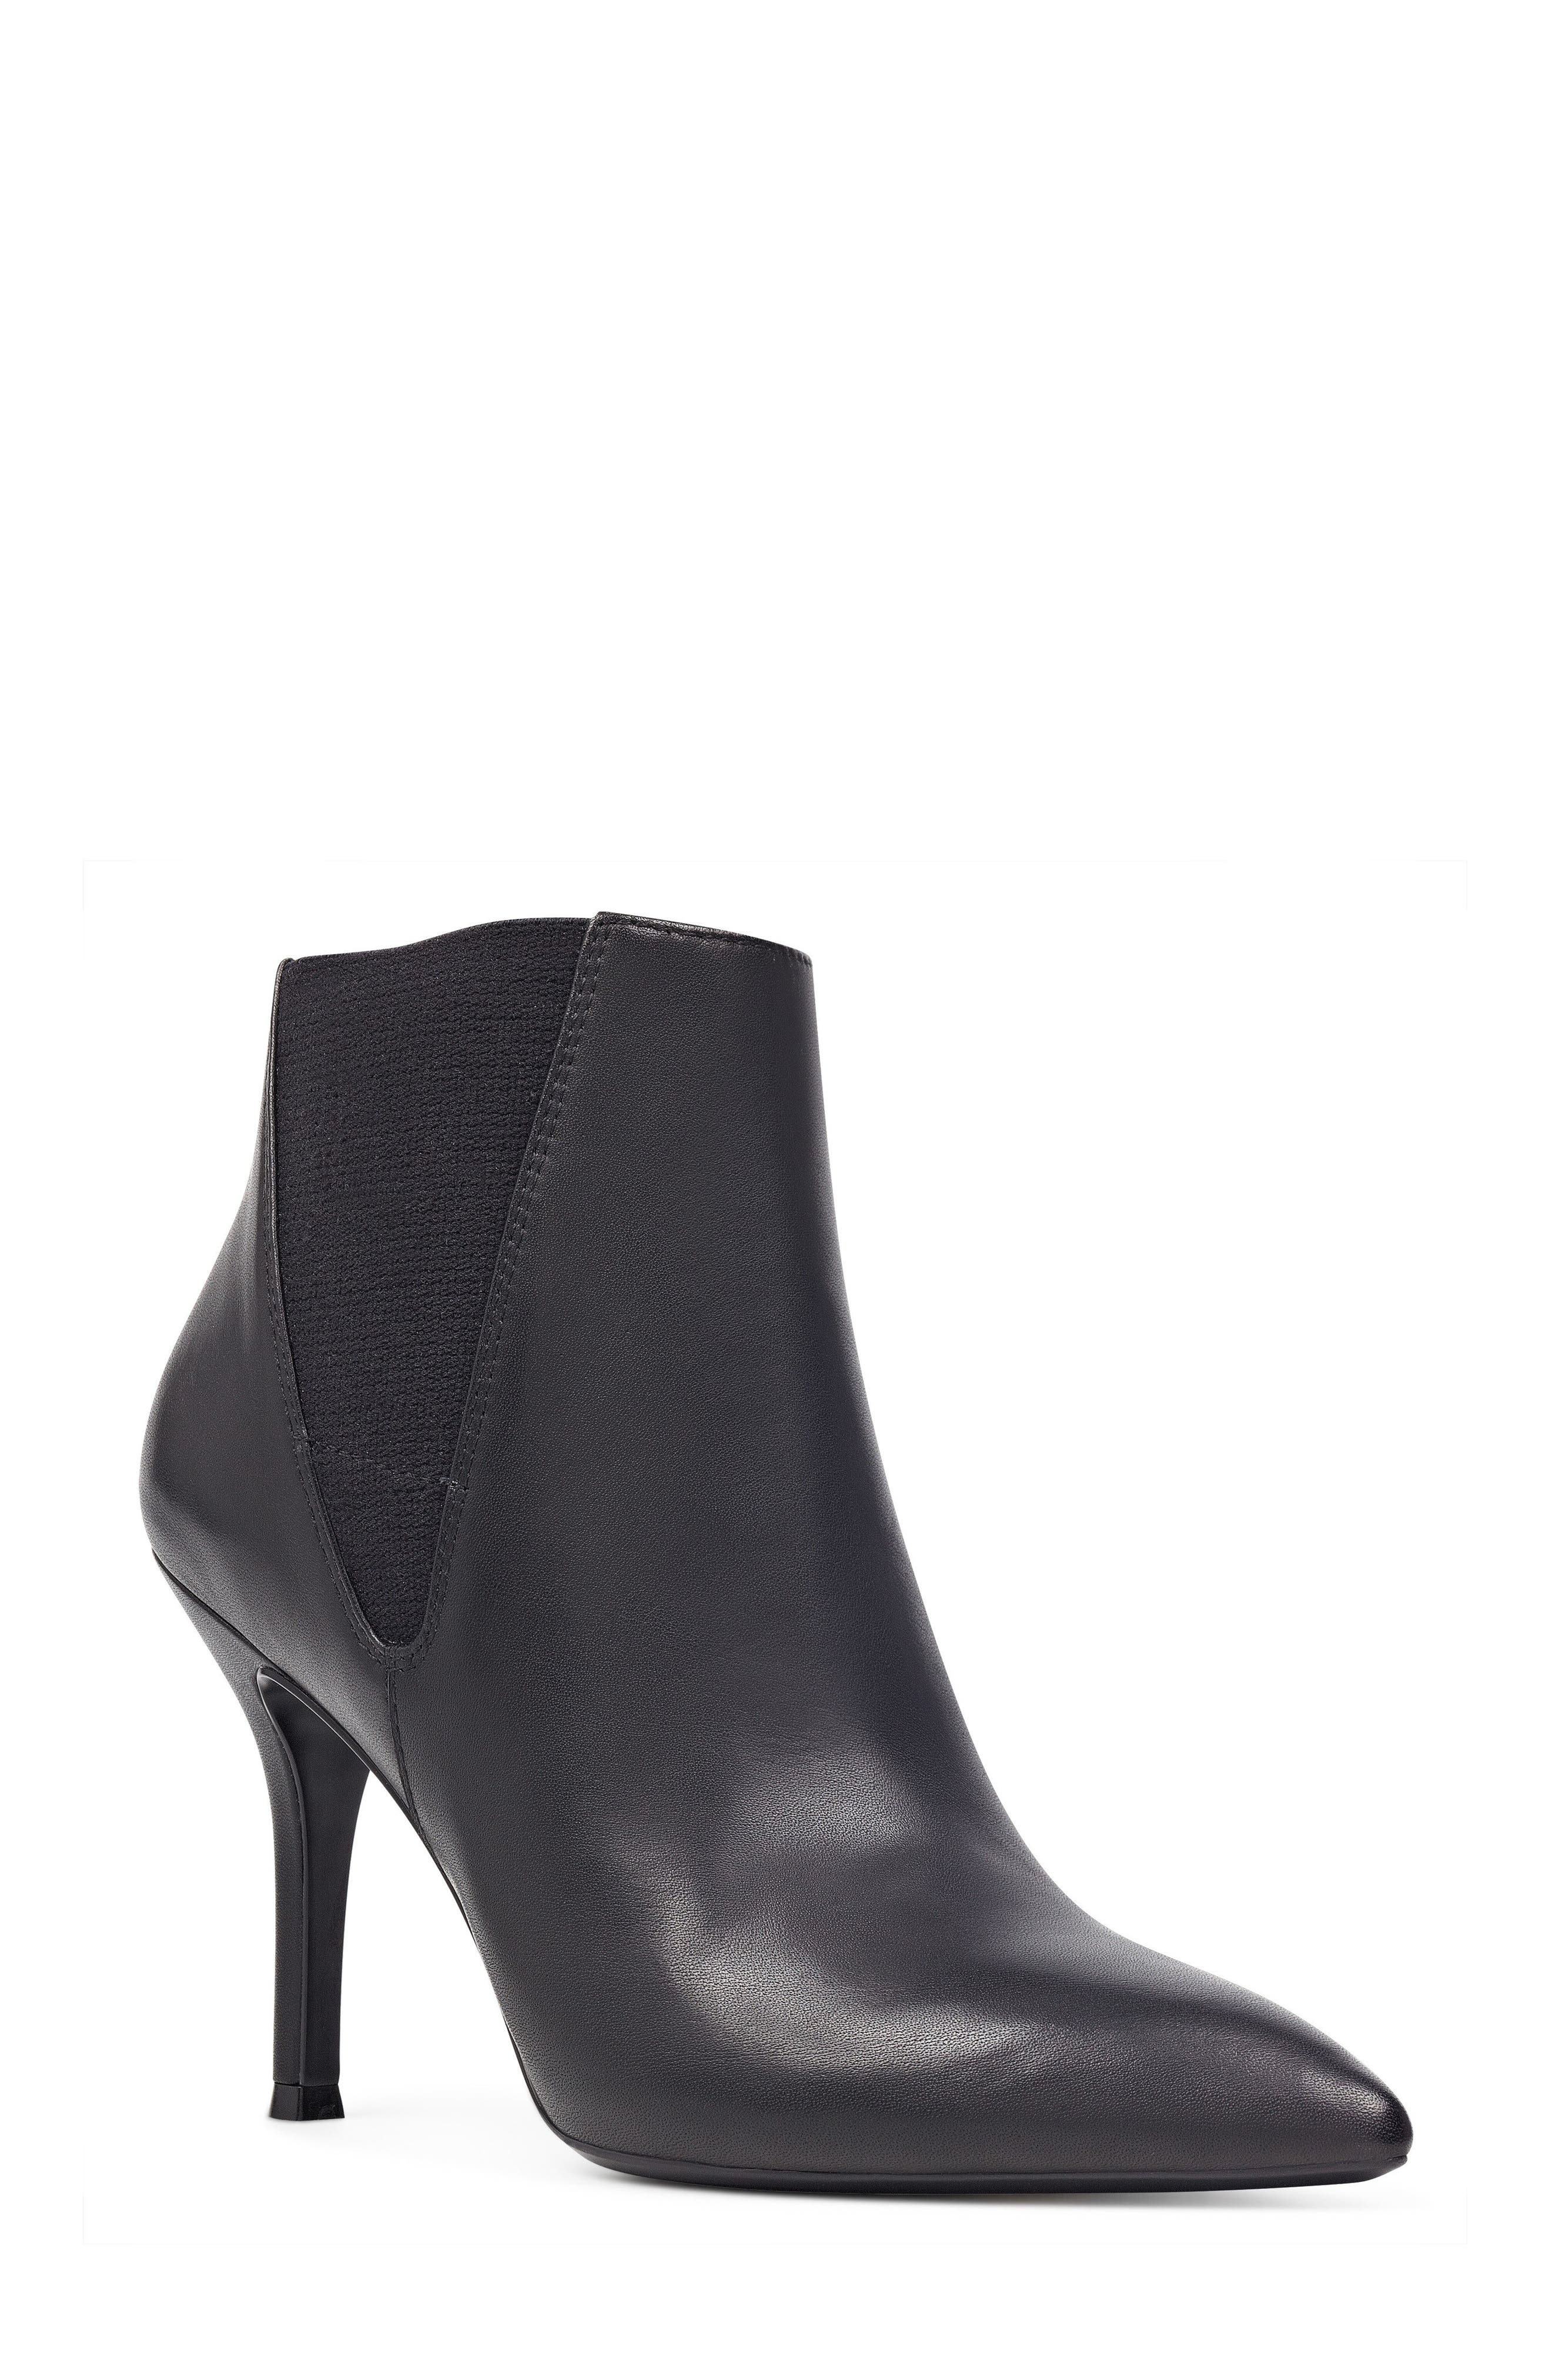 NINE WEST,                             Pointy Toe Bootie,                             Main thumbnail 1, color,                             001